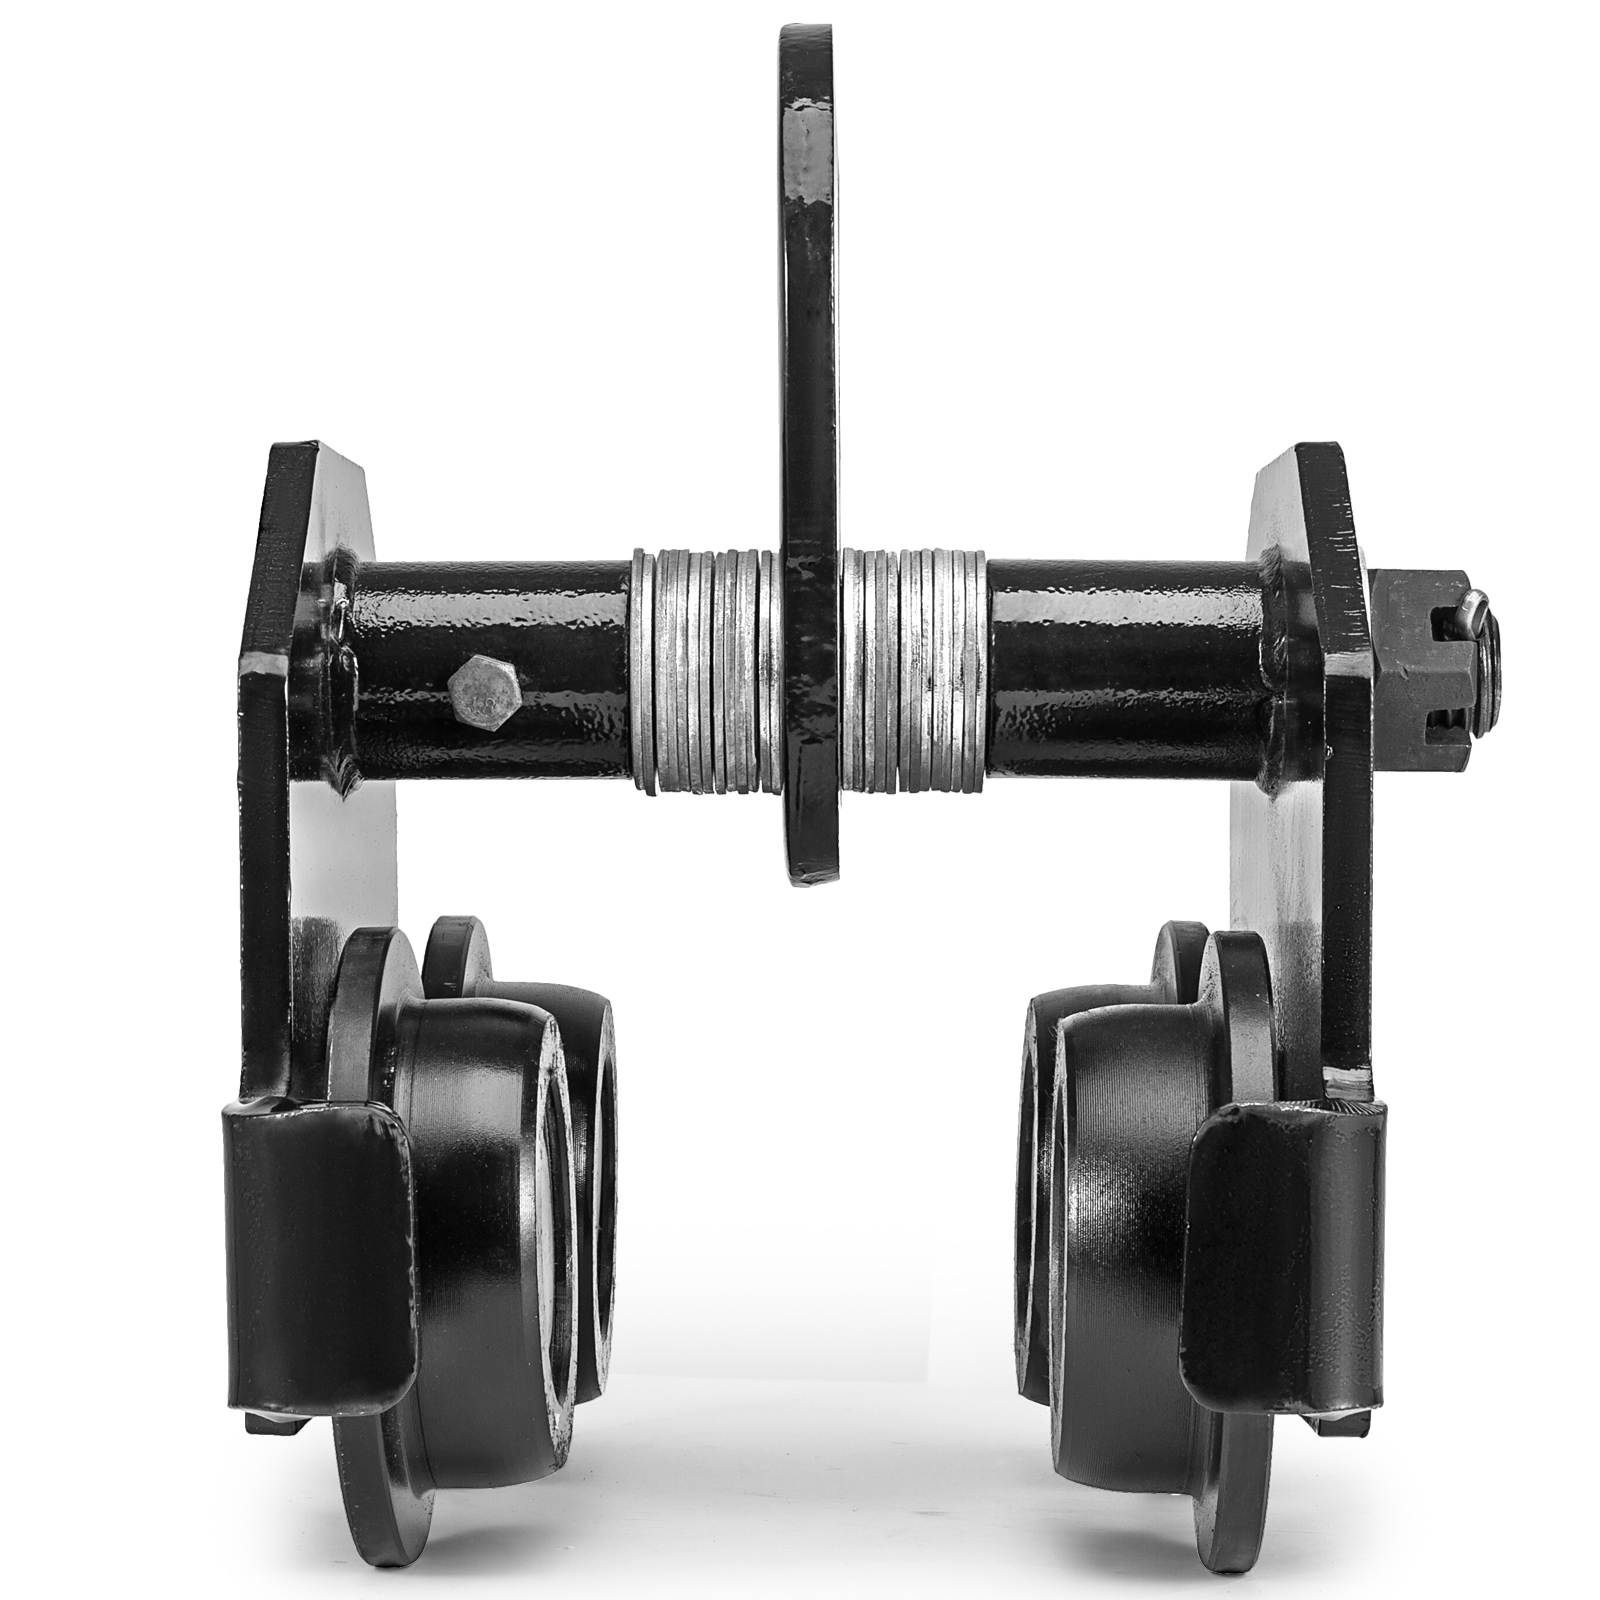 0-5T-2T-3T-Ton-Push-Beam-Trolley-For-Heavy-Loads-To-6600-Lb-Fits-Straight-I-Beam miniature 88